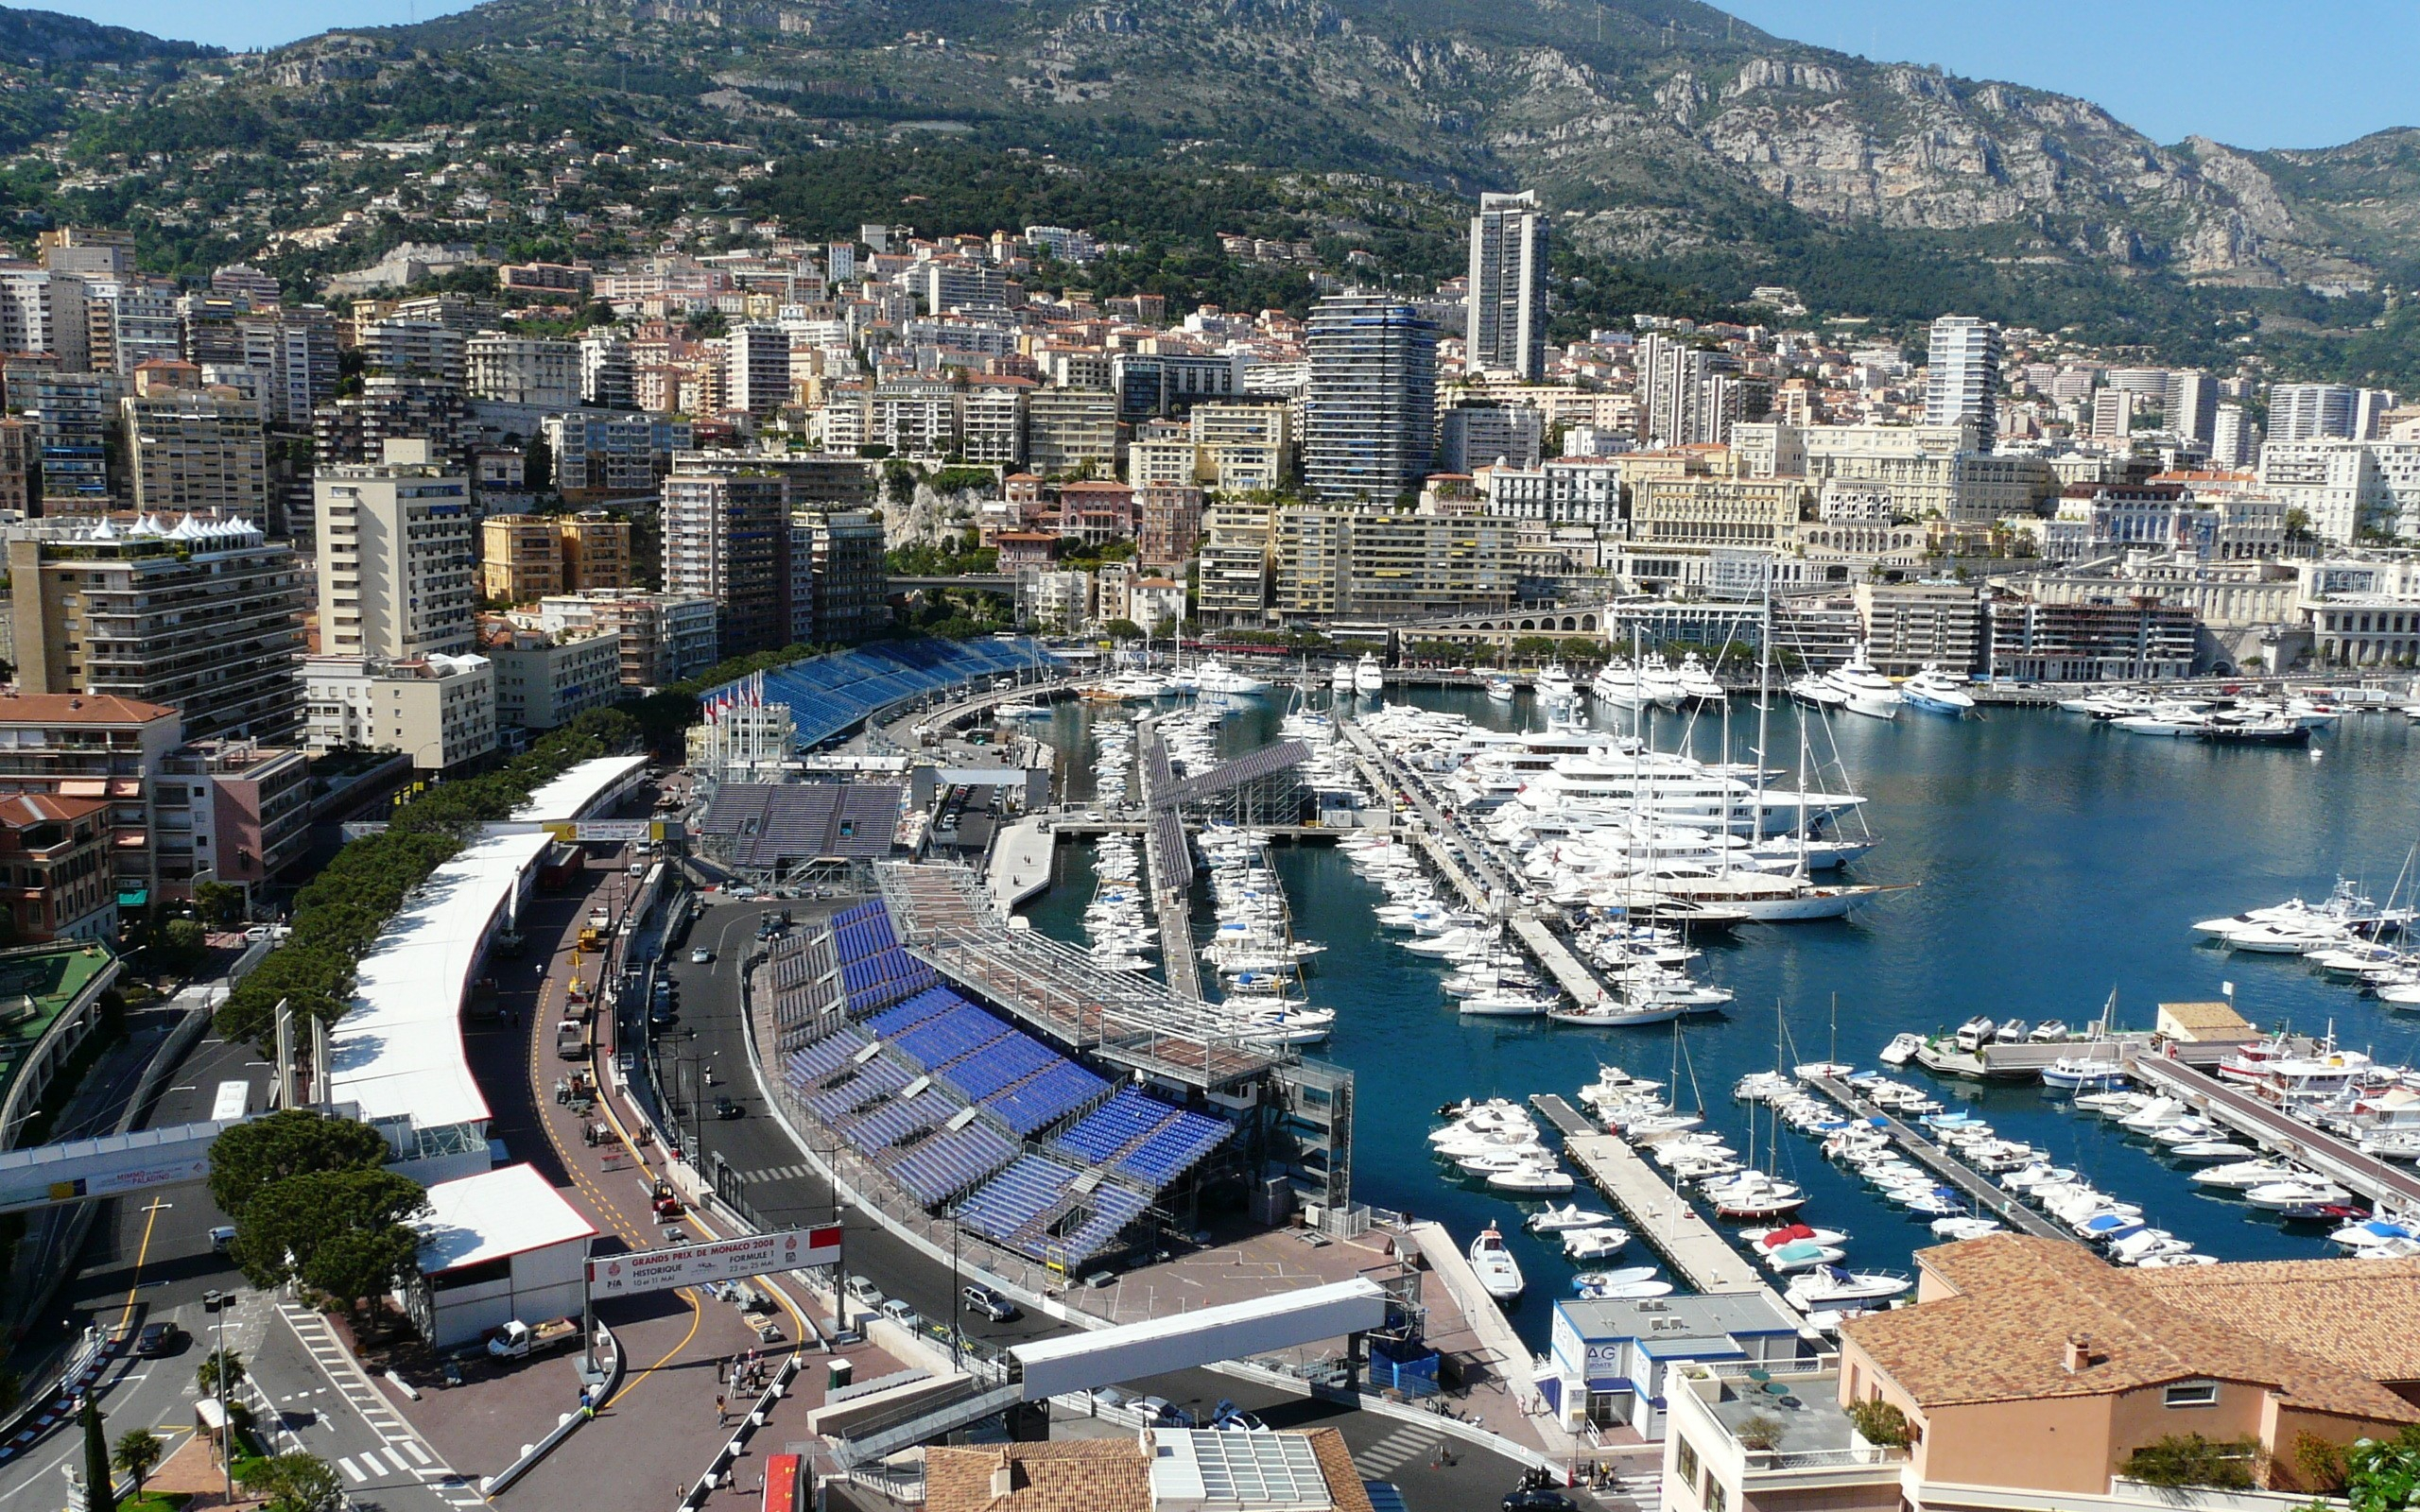 Monte Carlo High Quality Wallpapers